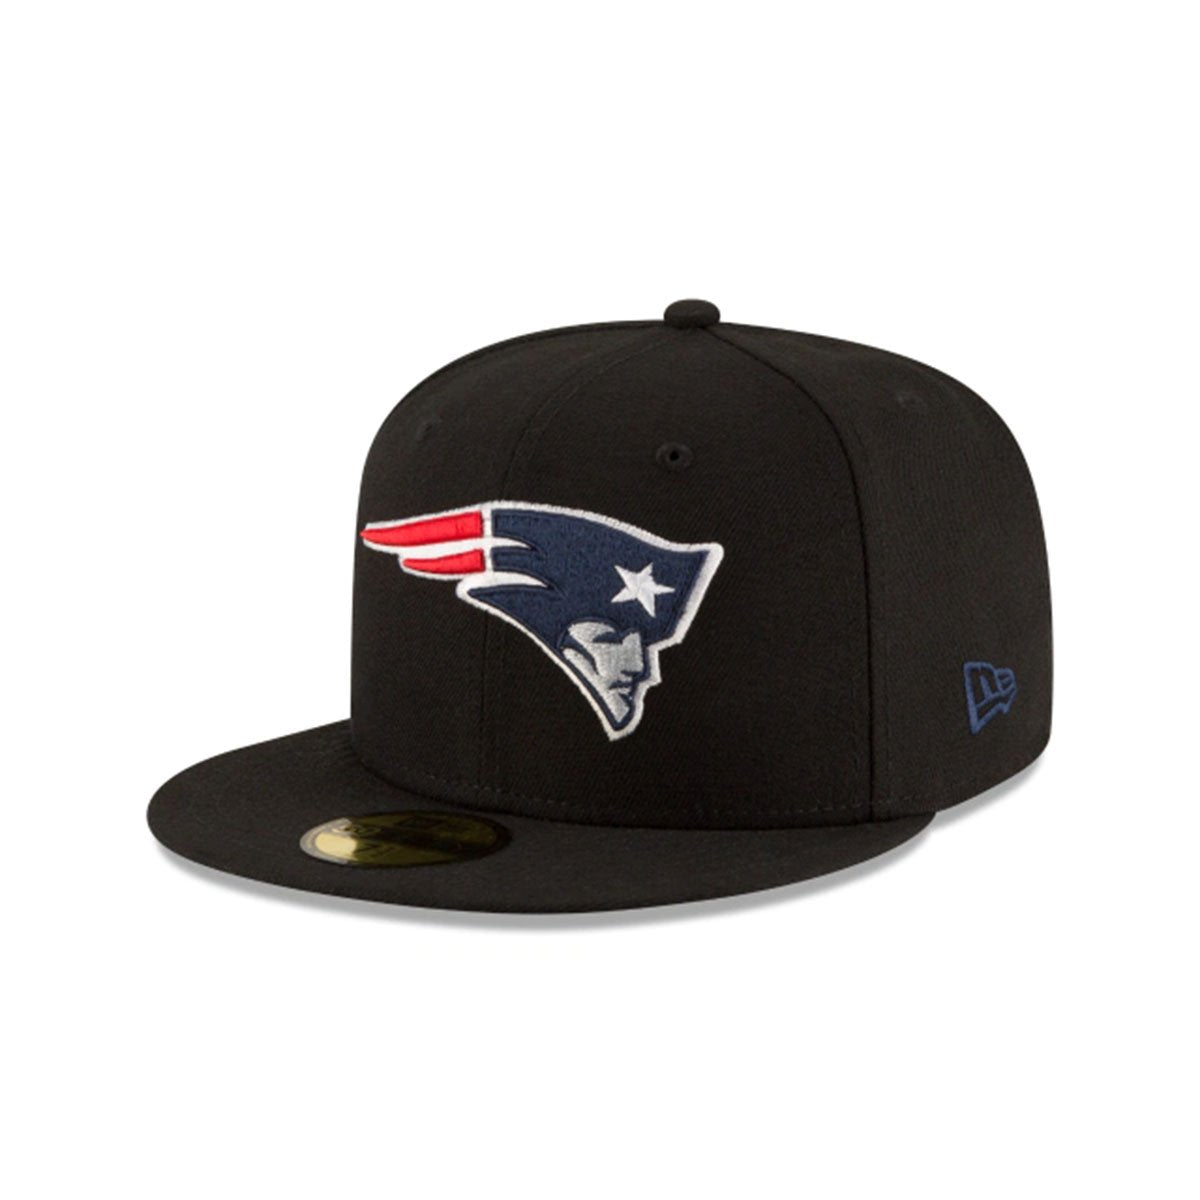 NEW ENGLAND PATRIOTS 59FIFTY FITTED BLACK/BLUE